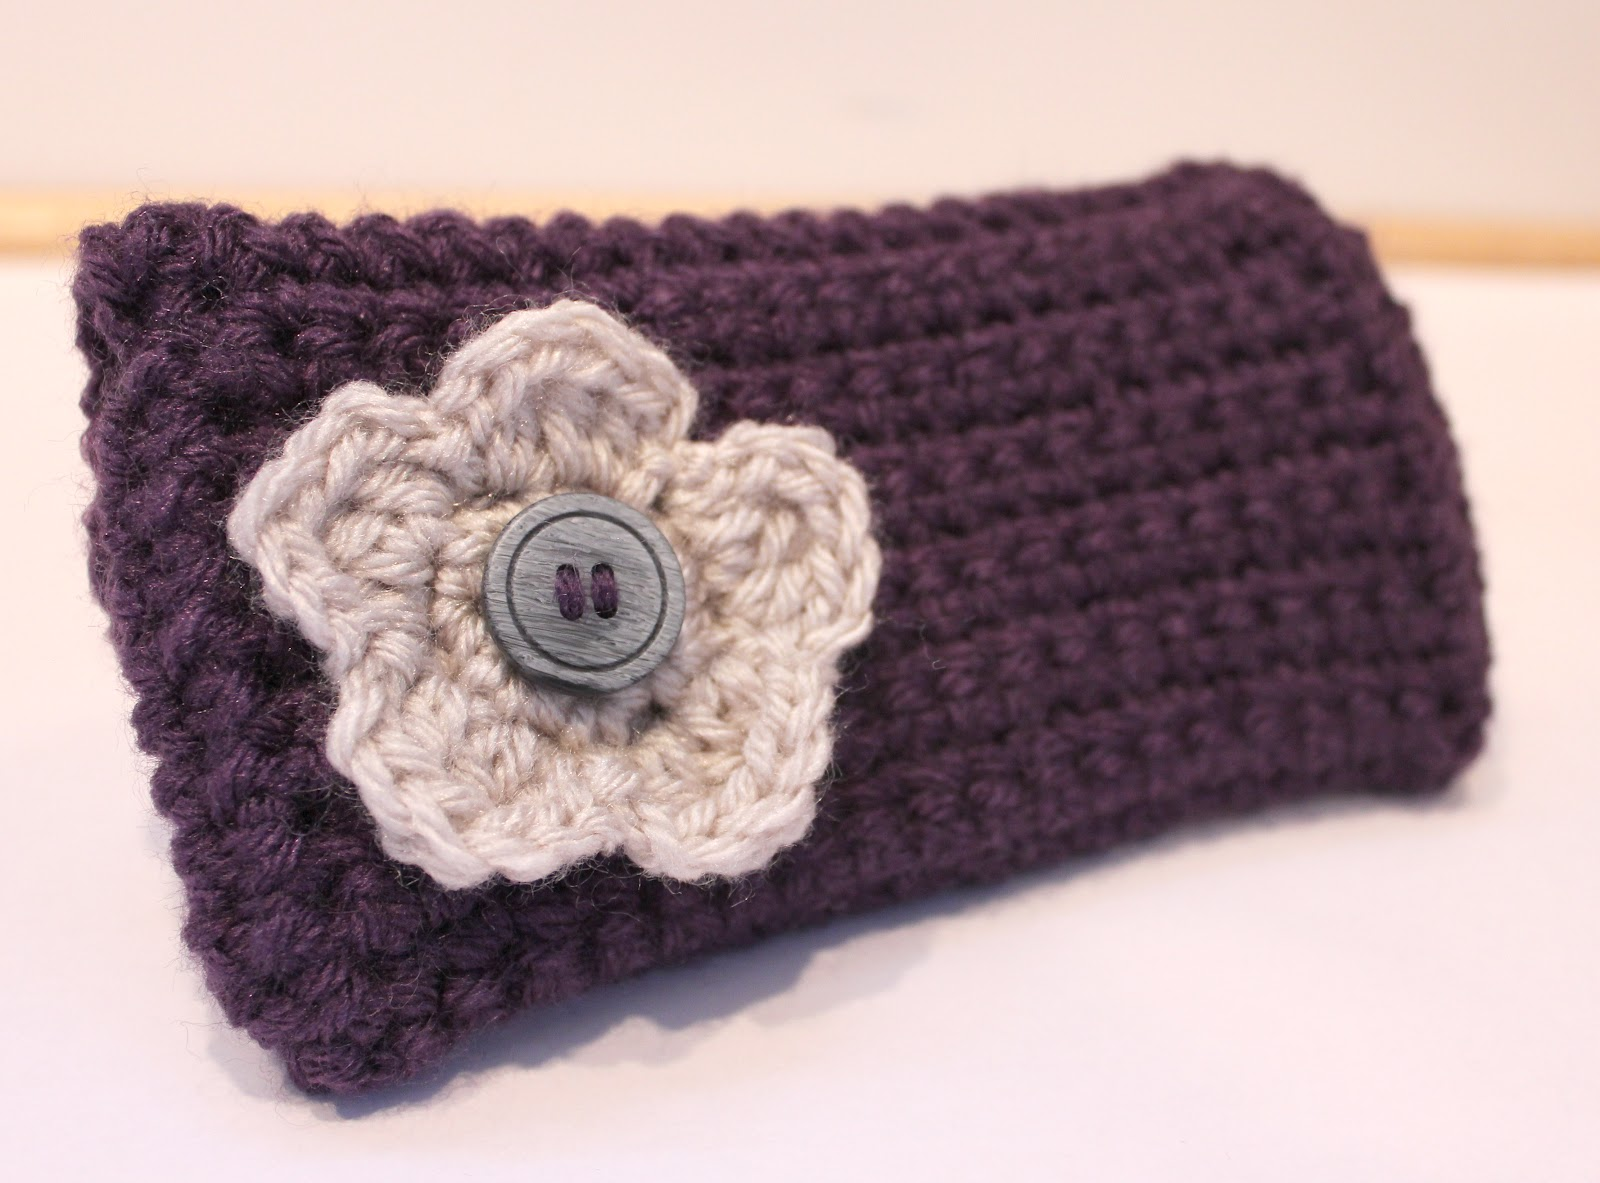 Crochet Clutch Bag Pattern : ... tissues and much more a great accessory for your diaper bag or purse